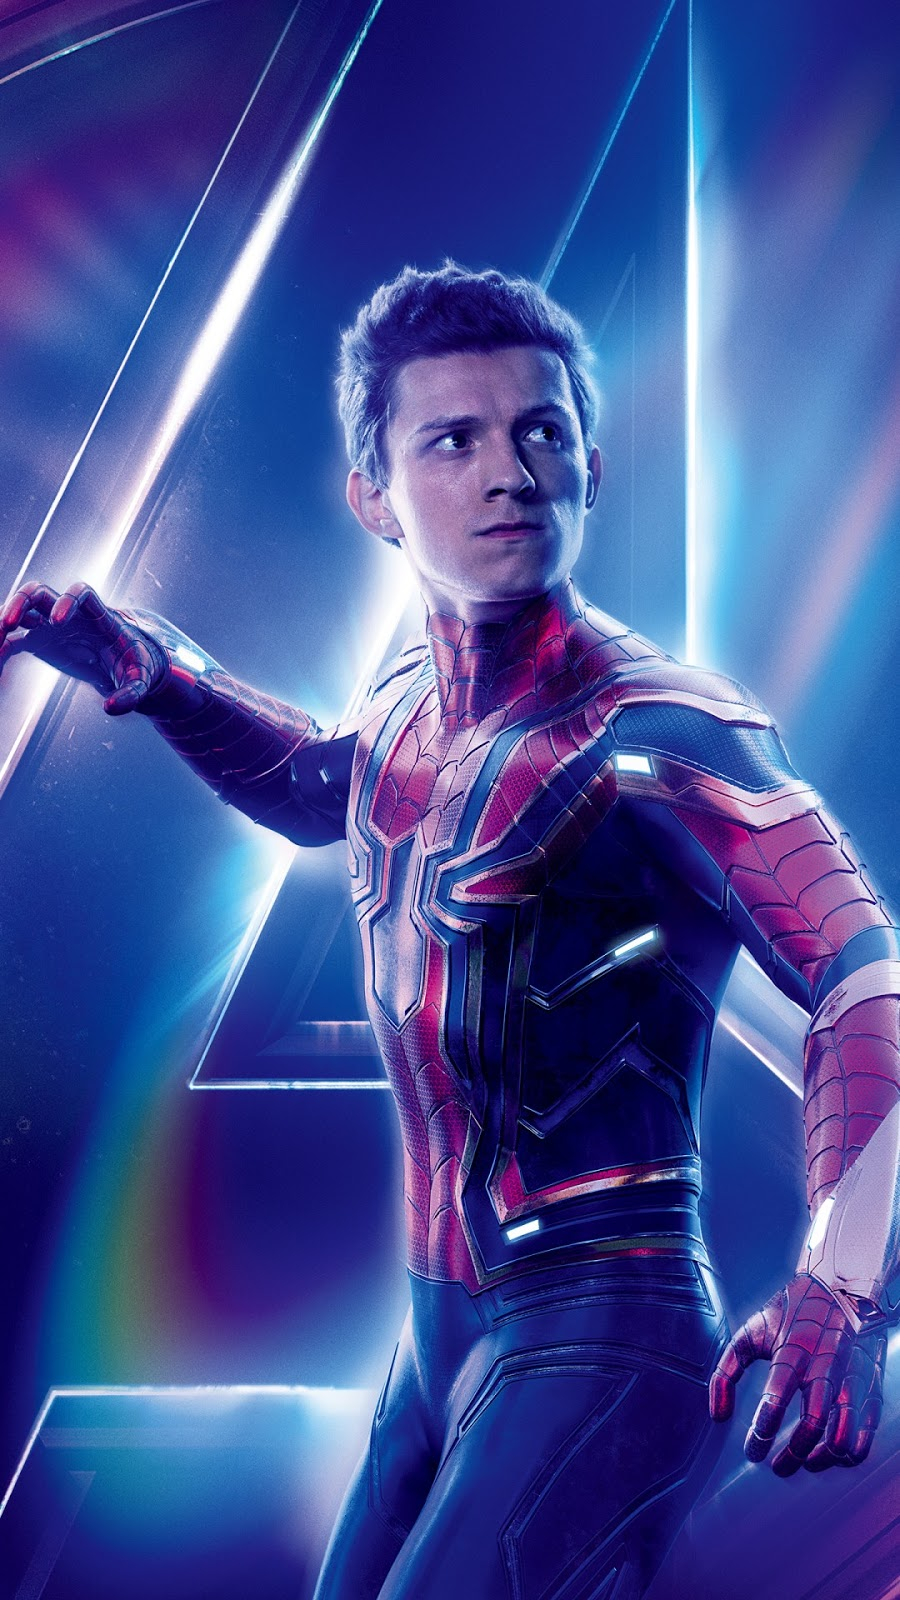 Spider Man Avengers Infinity, Tom Holland, Vingadores: Guerra Infinita para PC, Notebook, iPhone, Android e Tablet.